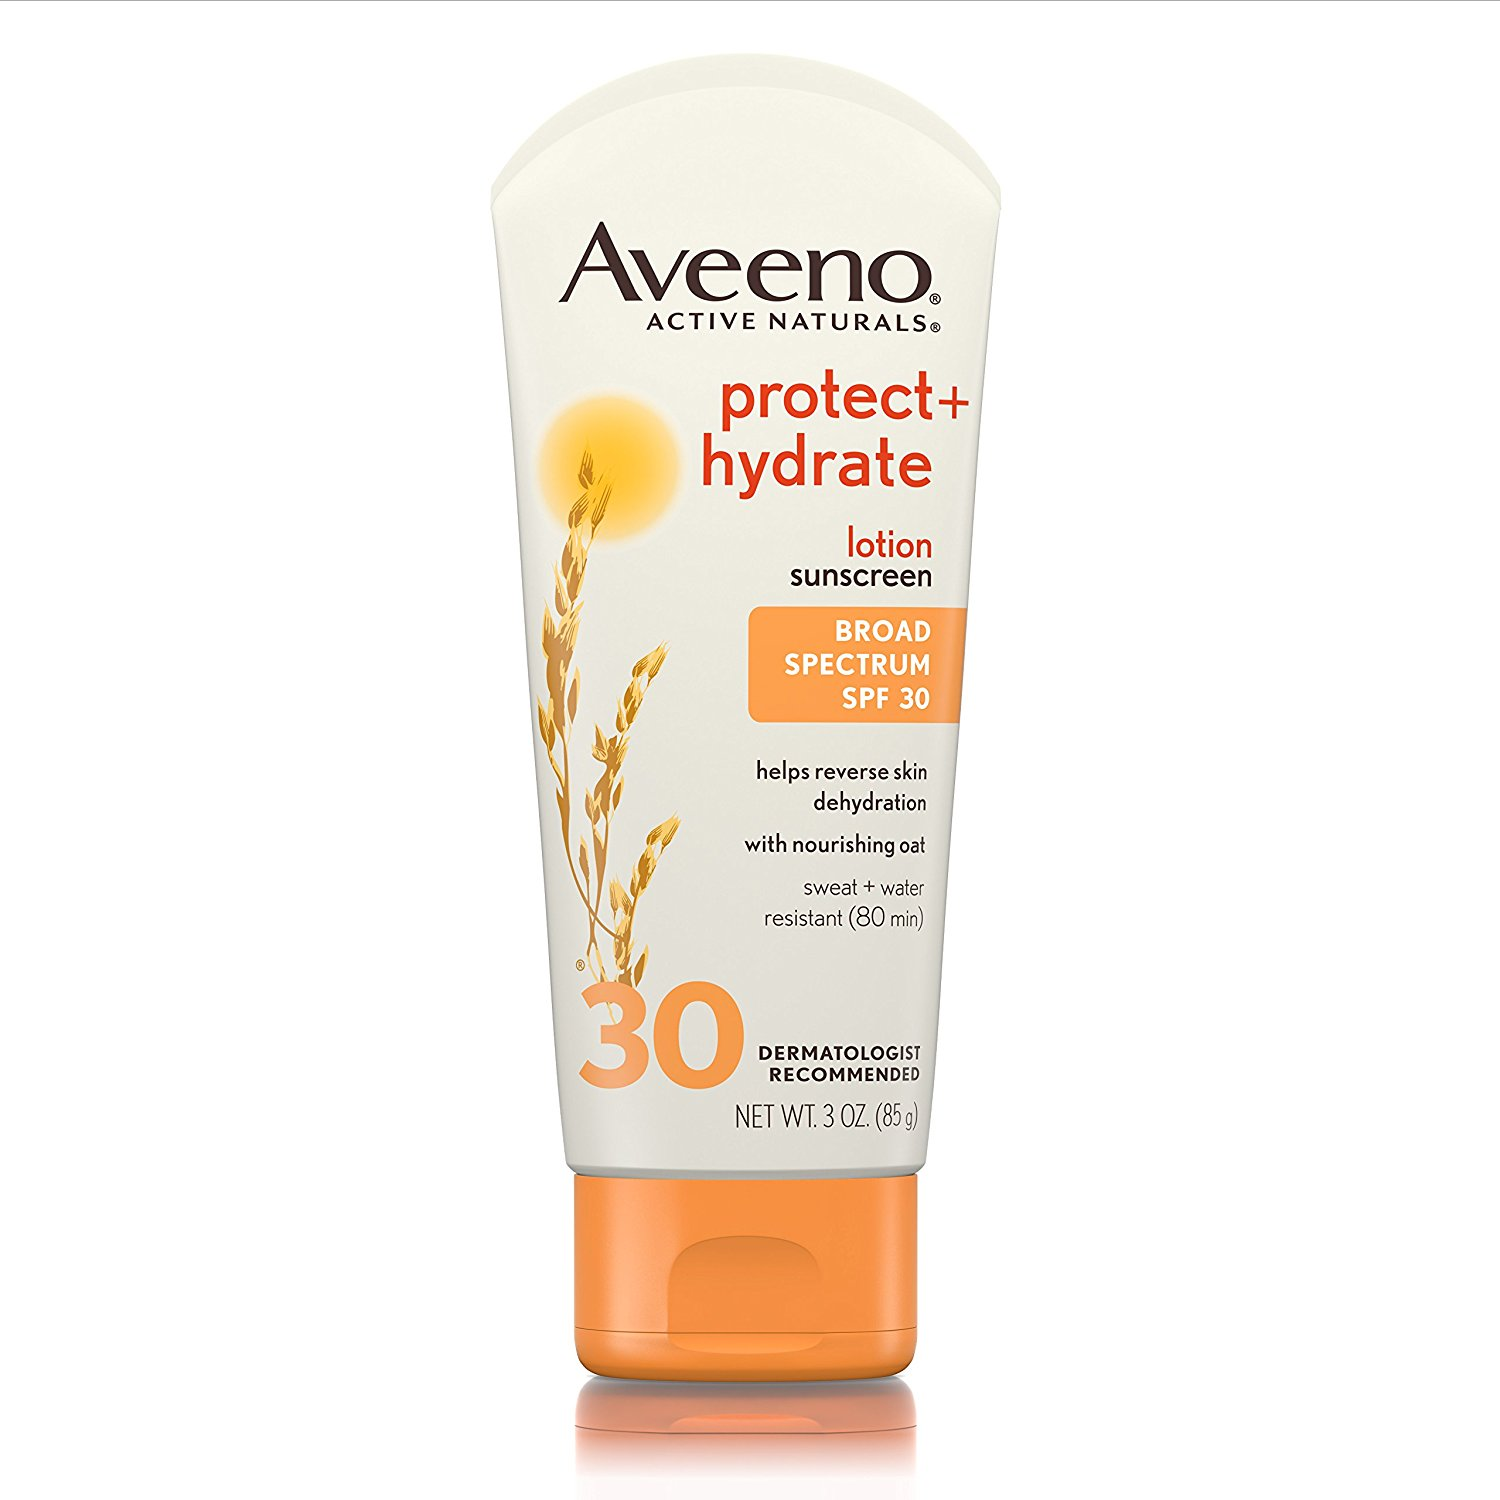 Aveeno Protect + Hydrate Lotion Sunscreen with Broad Spectrum SPF 30